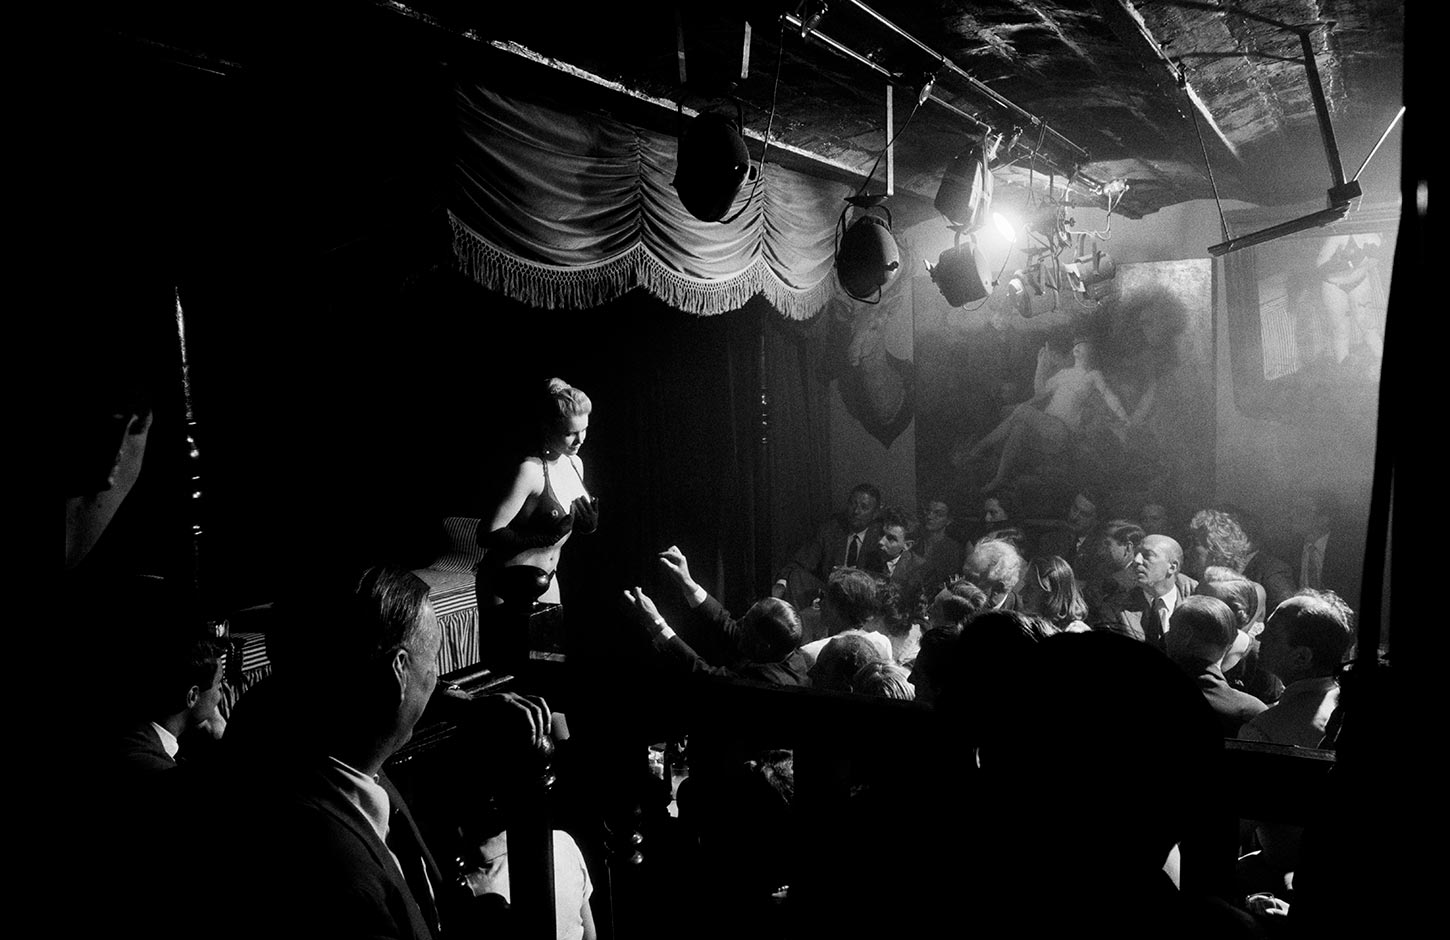 Show at the Crazy Horse night club. Paris, France, 1956.